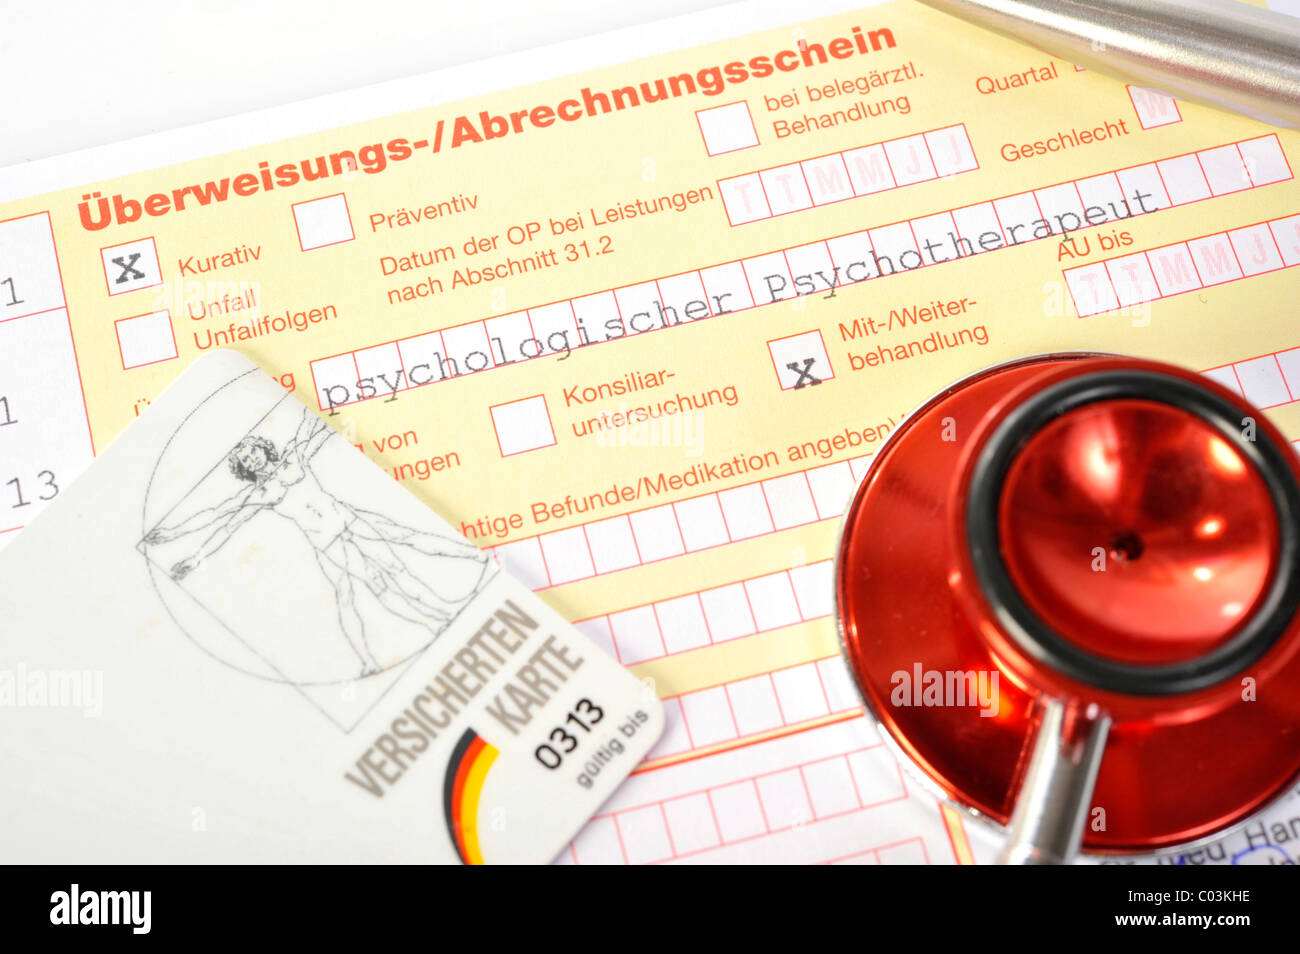 Medical transfer and billing form, transfer to a psychological psychotherapist for co- and subsequent treatment Stock Photo